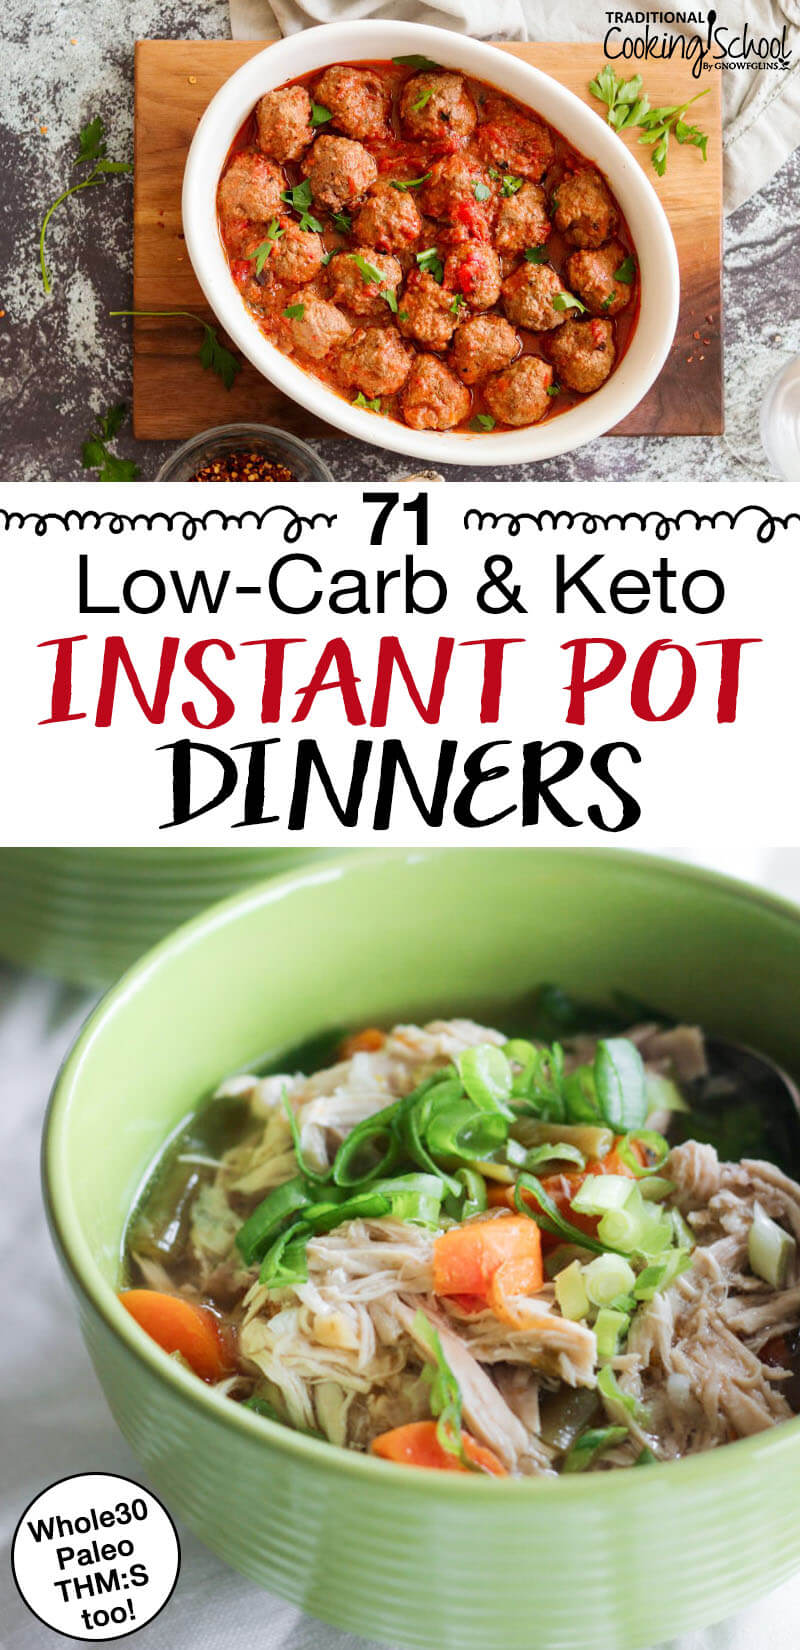 "photo collage of delicious low-carb dinners with text overlay: ""71 Low-Carb & Keto Instant Pot Dinners"""